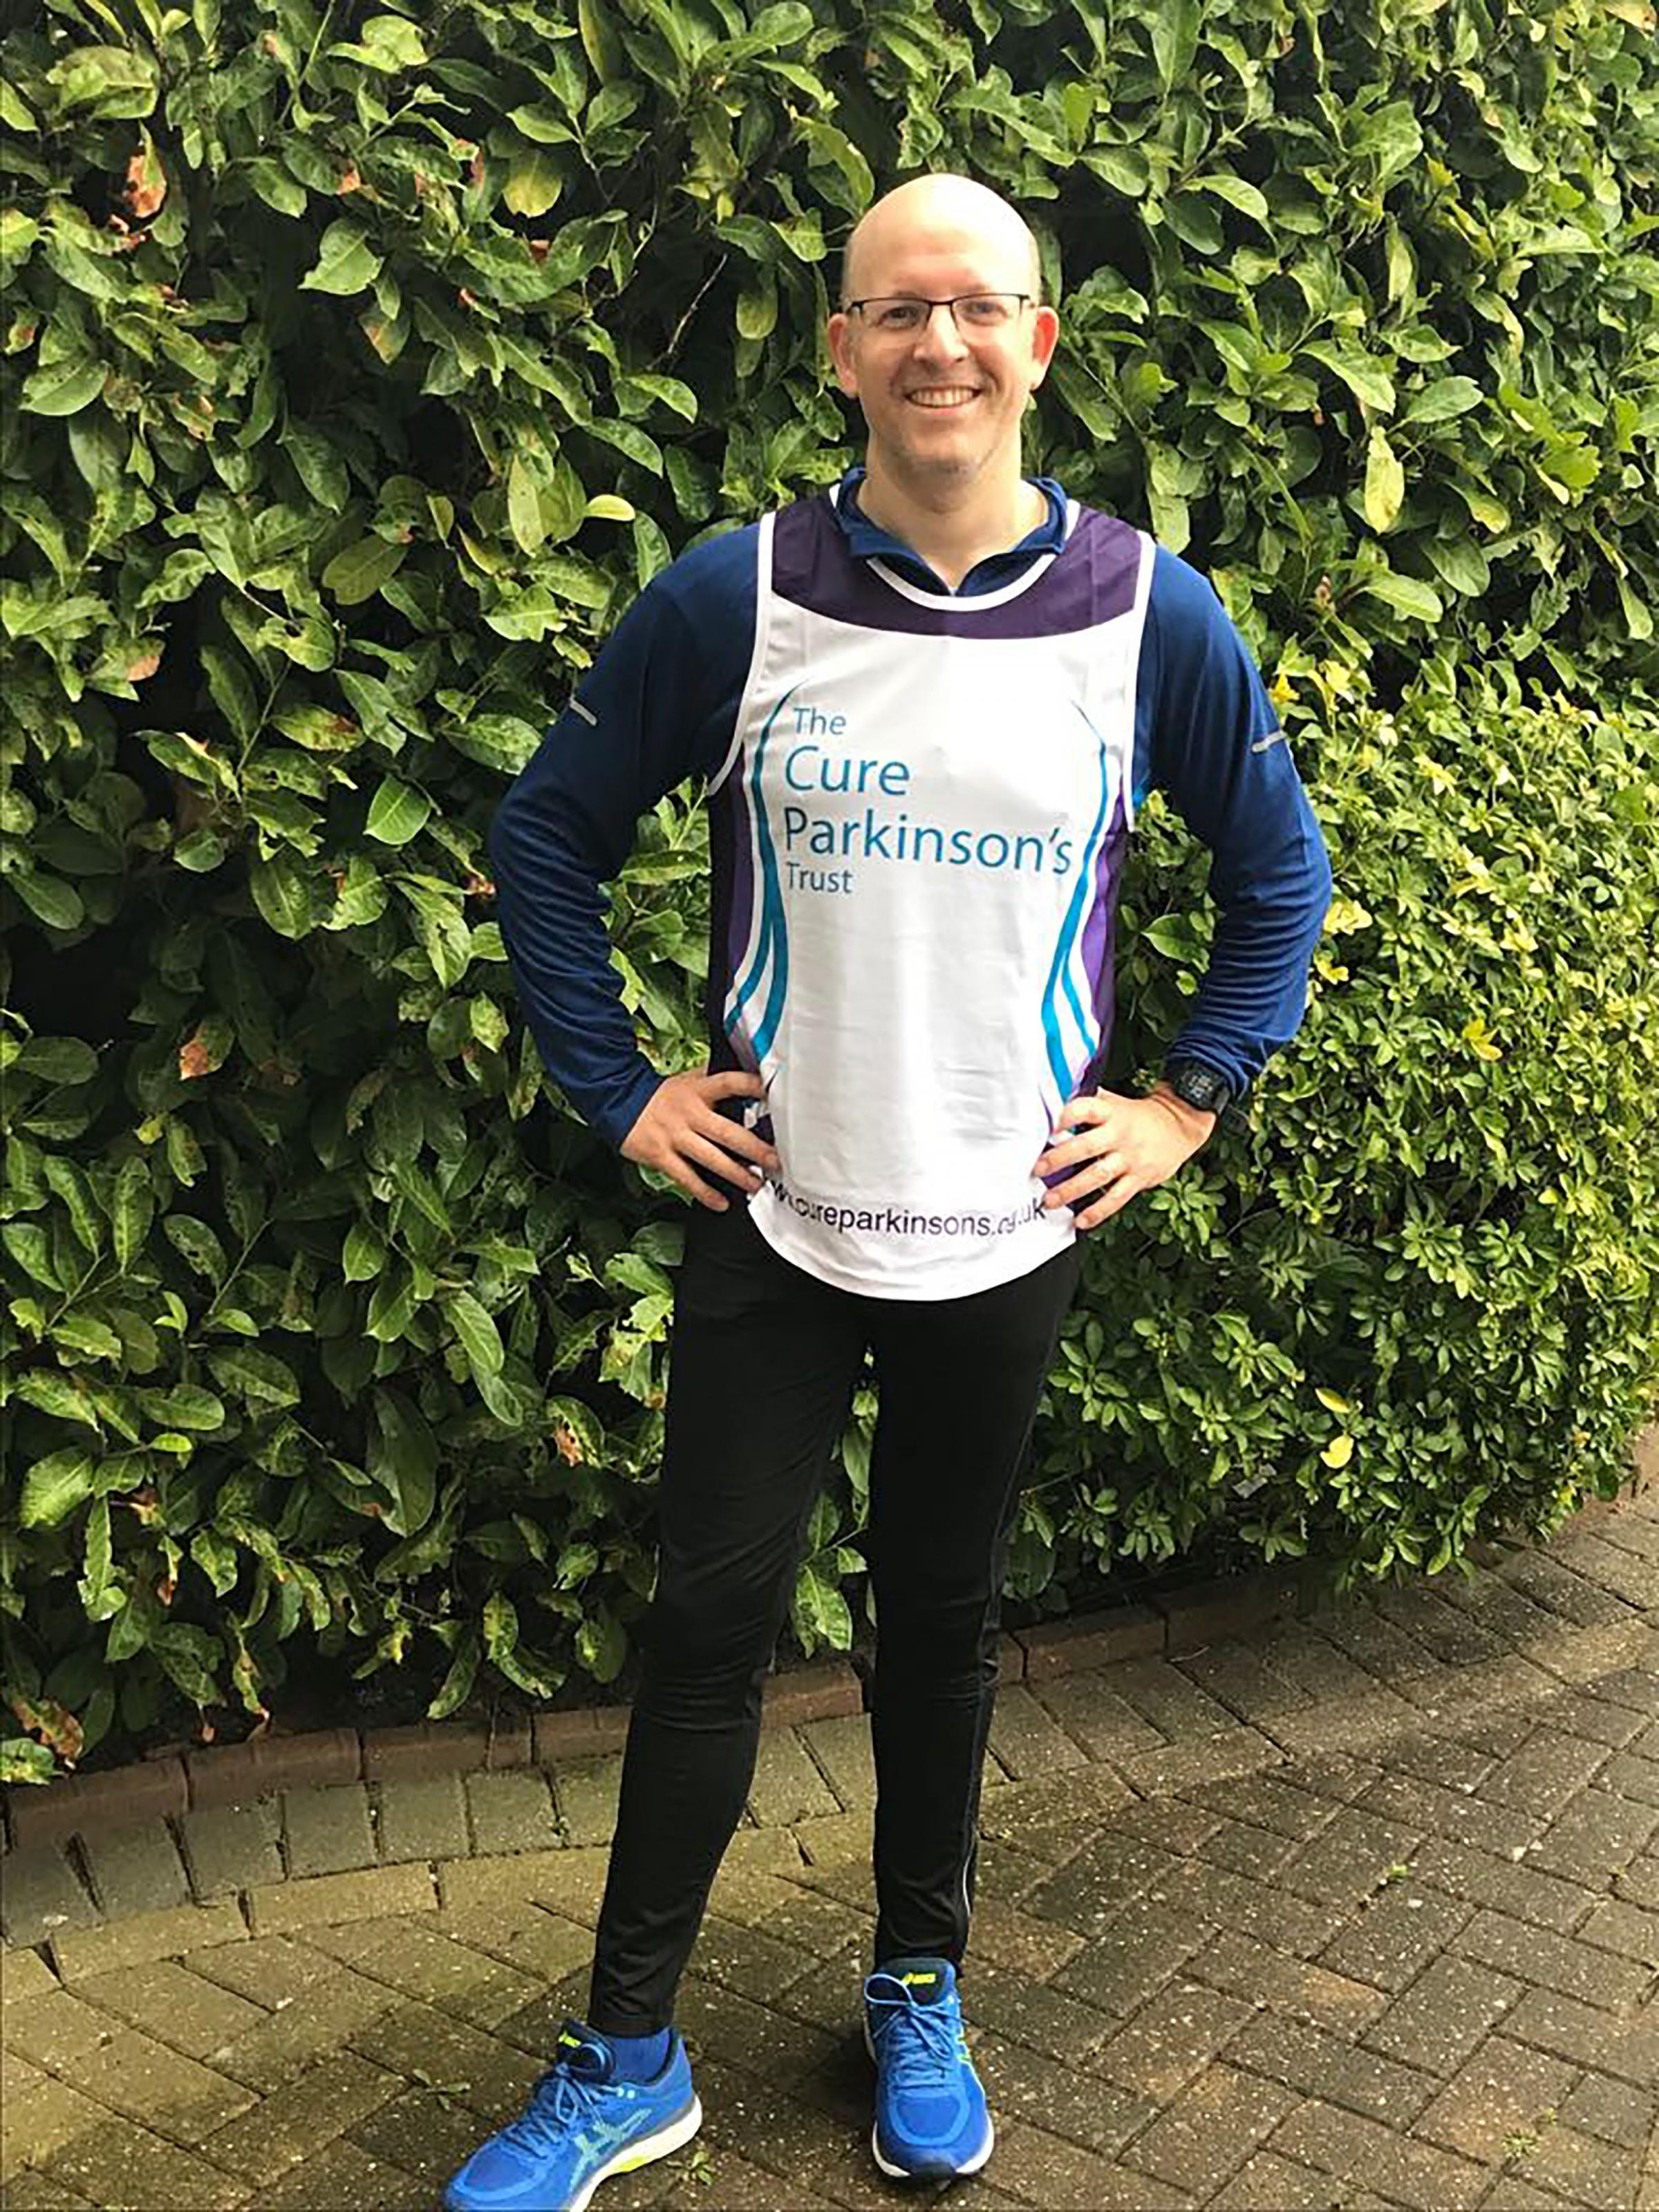 Daniel Quint, 44, The Rise, Edgware, is running in memory of his late father-in-law, Mark Monk, a long-term supporter of The Cure Parkinson's Trust.